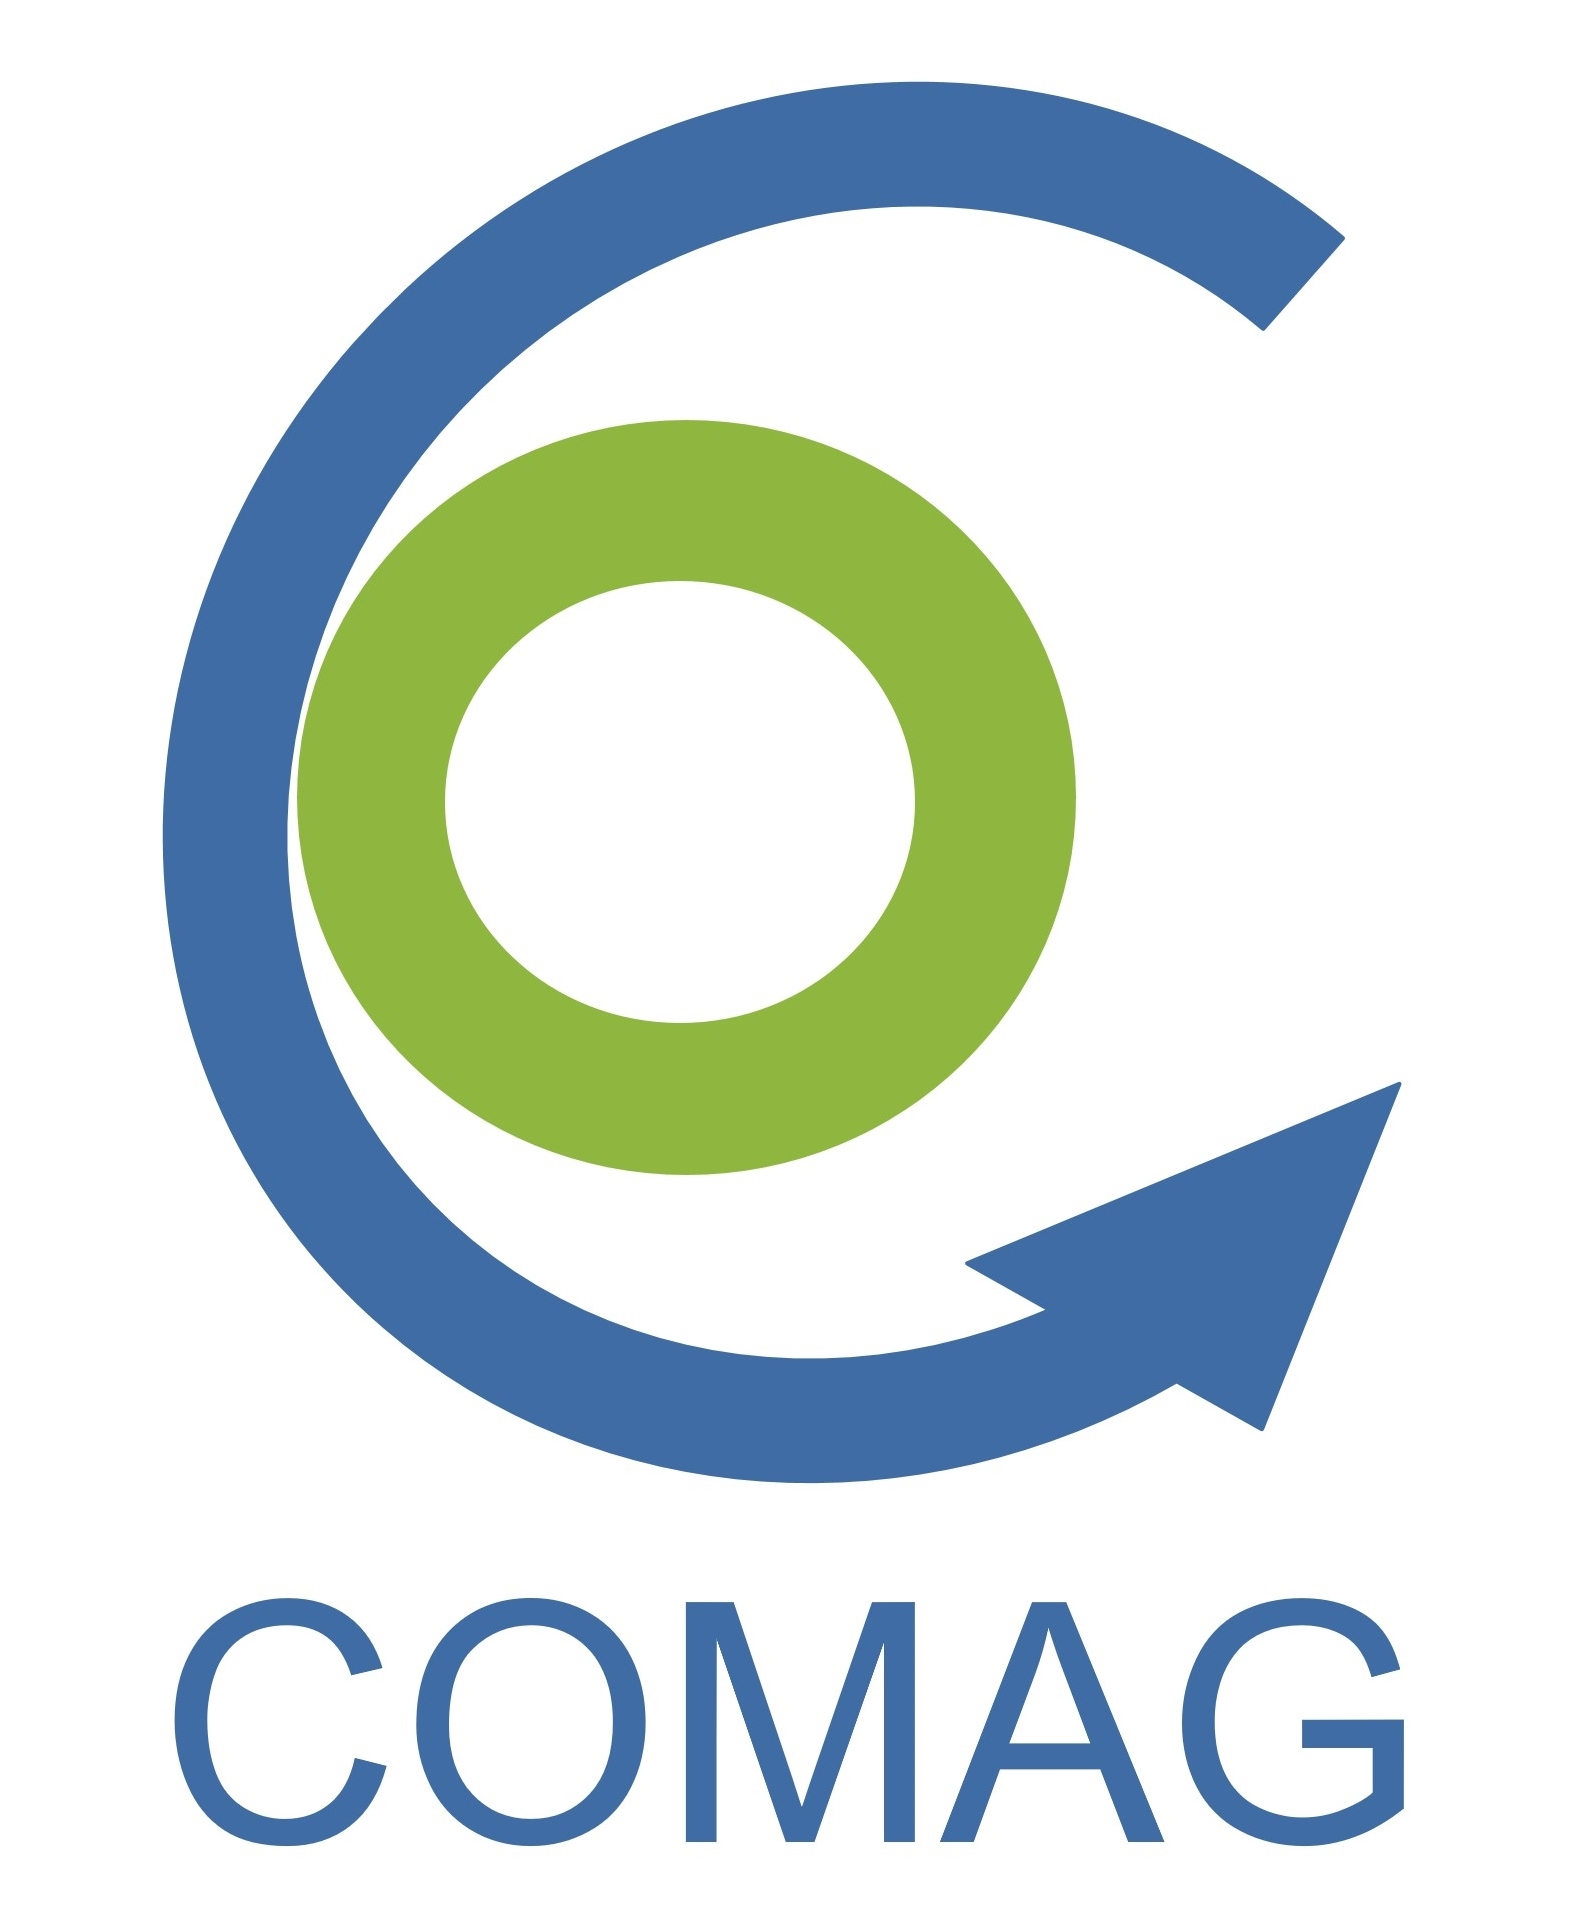 COMAG Competence Agency GmbH